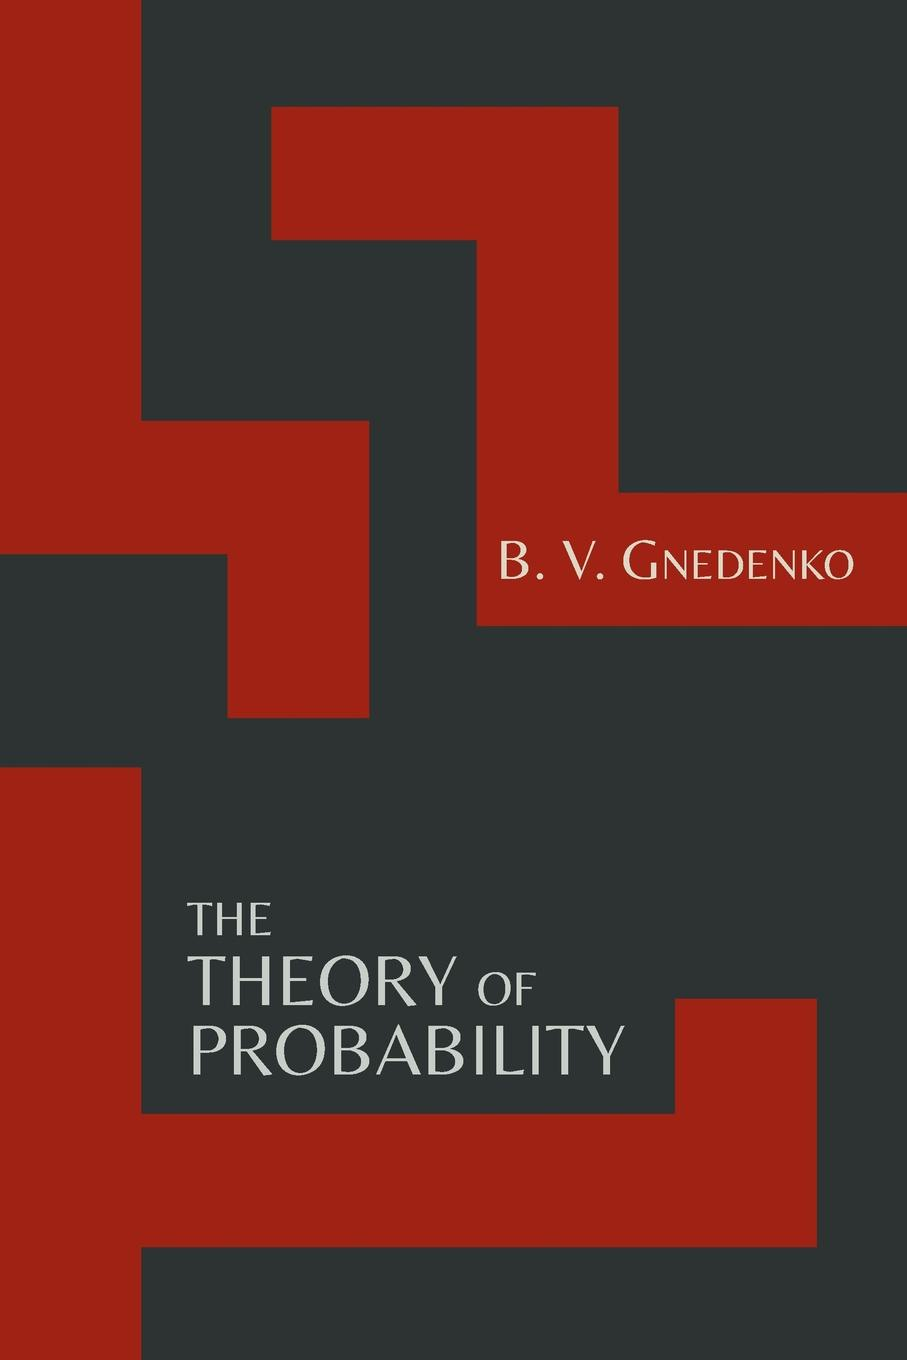 B. V. Gnedenko The Theory of Probability .Second Edition. florescu ionut handbook of probability